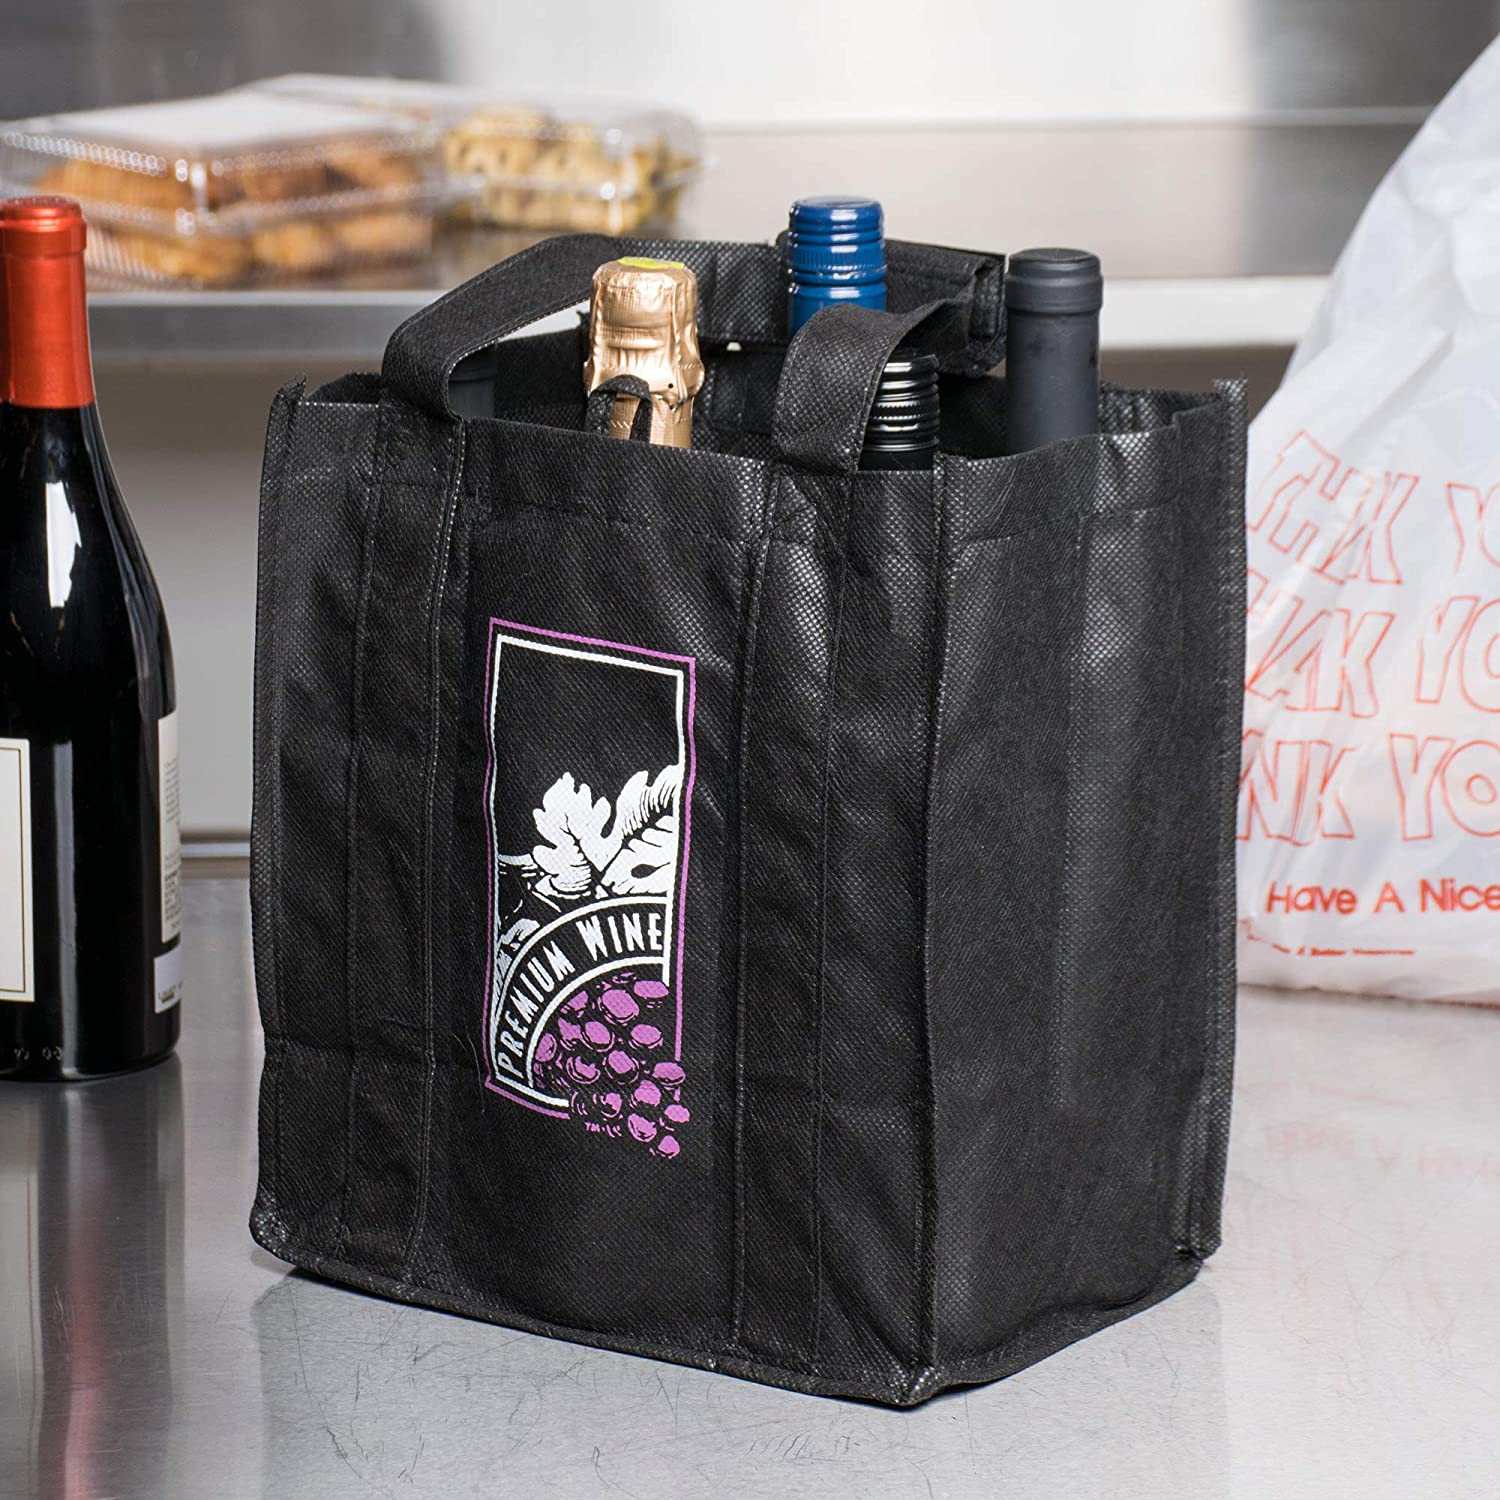 Non-Woven 6 Bottle Wine Carrier REUSEABLE TOTE BAG - 5 bags